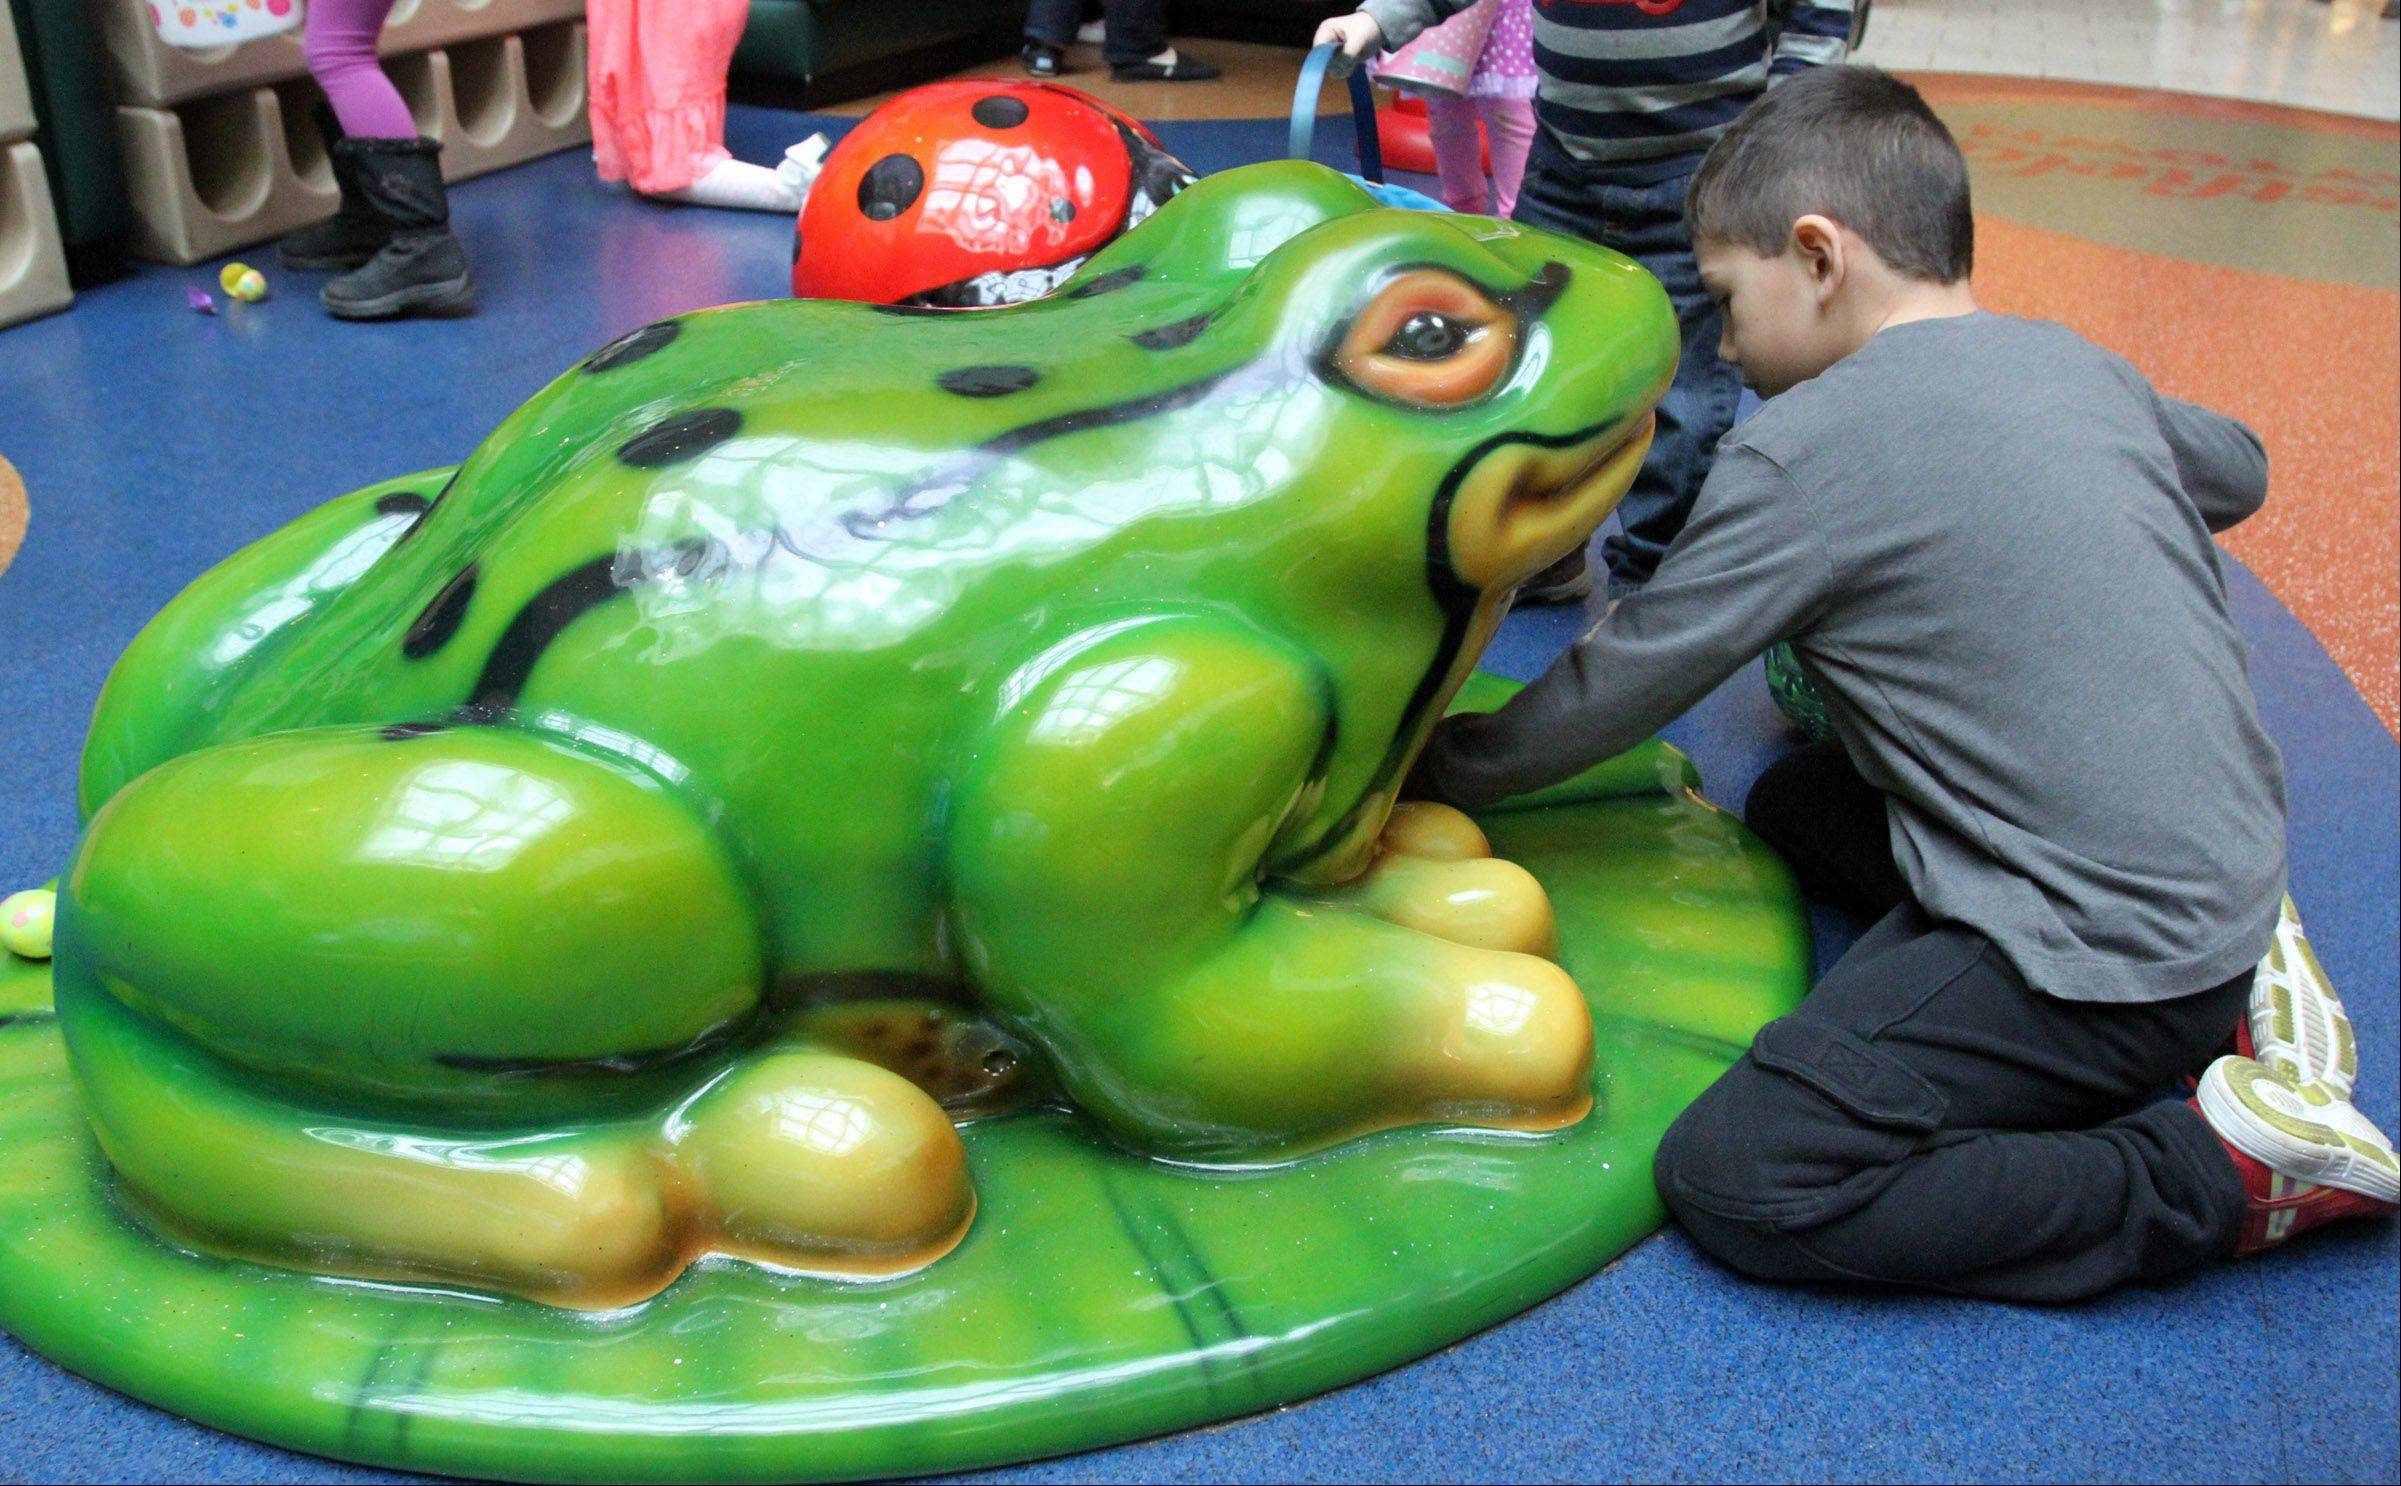 Jordan Vincent, 5, of Mundelein, finds an egg under this frog in play-town area at the annual Easter egg hunt at Westfield Hawthorn Mall in Vernon Hills on Saturday. The mall-wide egg hunt event included petting zoo, face-painting, donuts, and music.